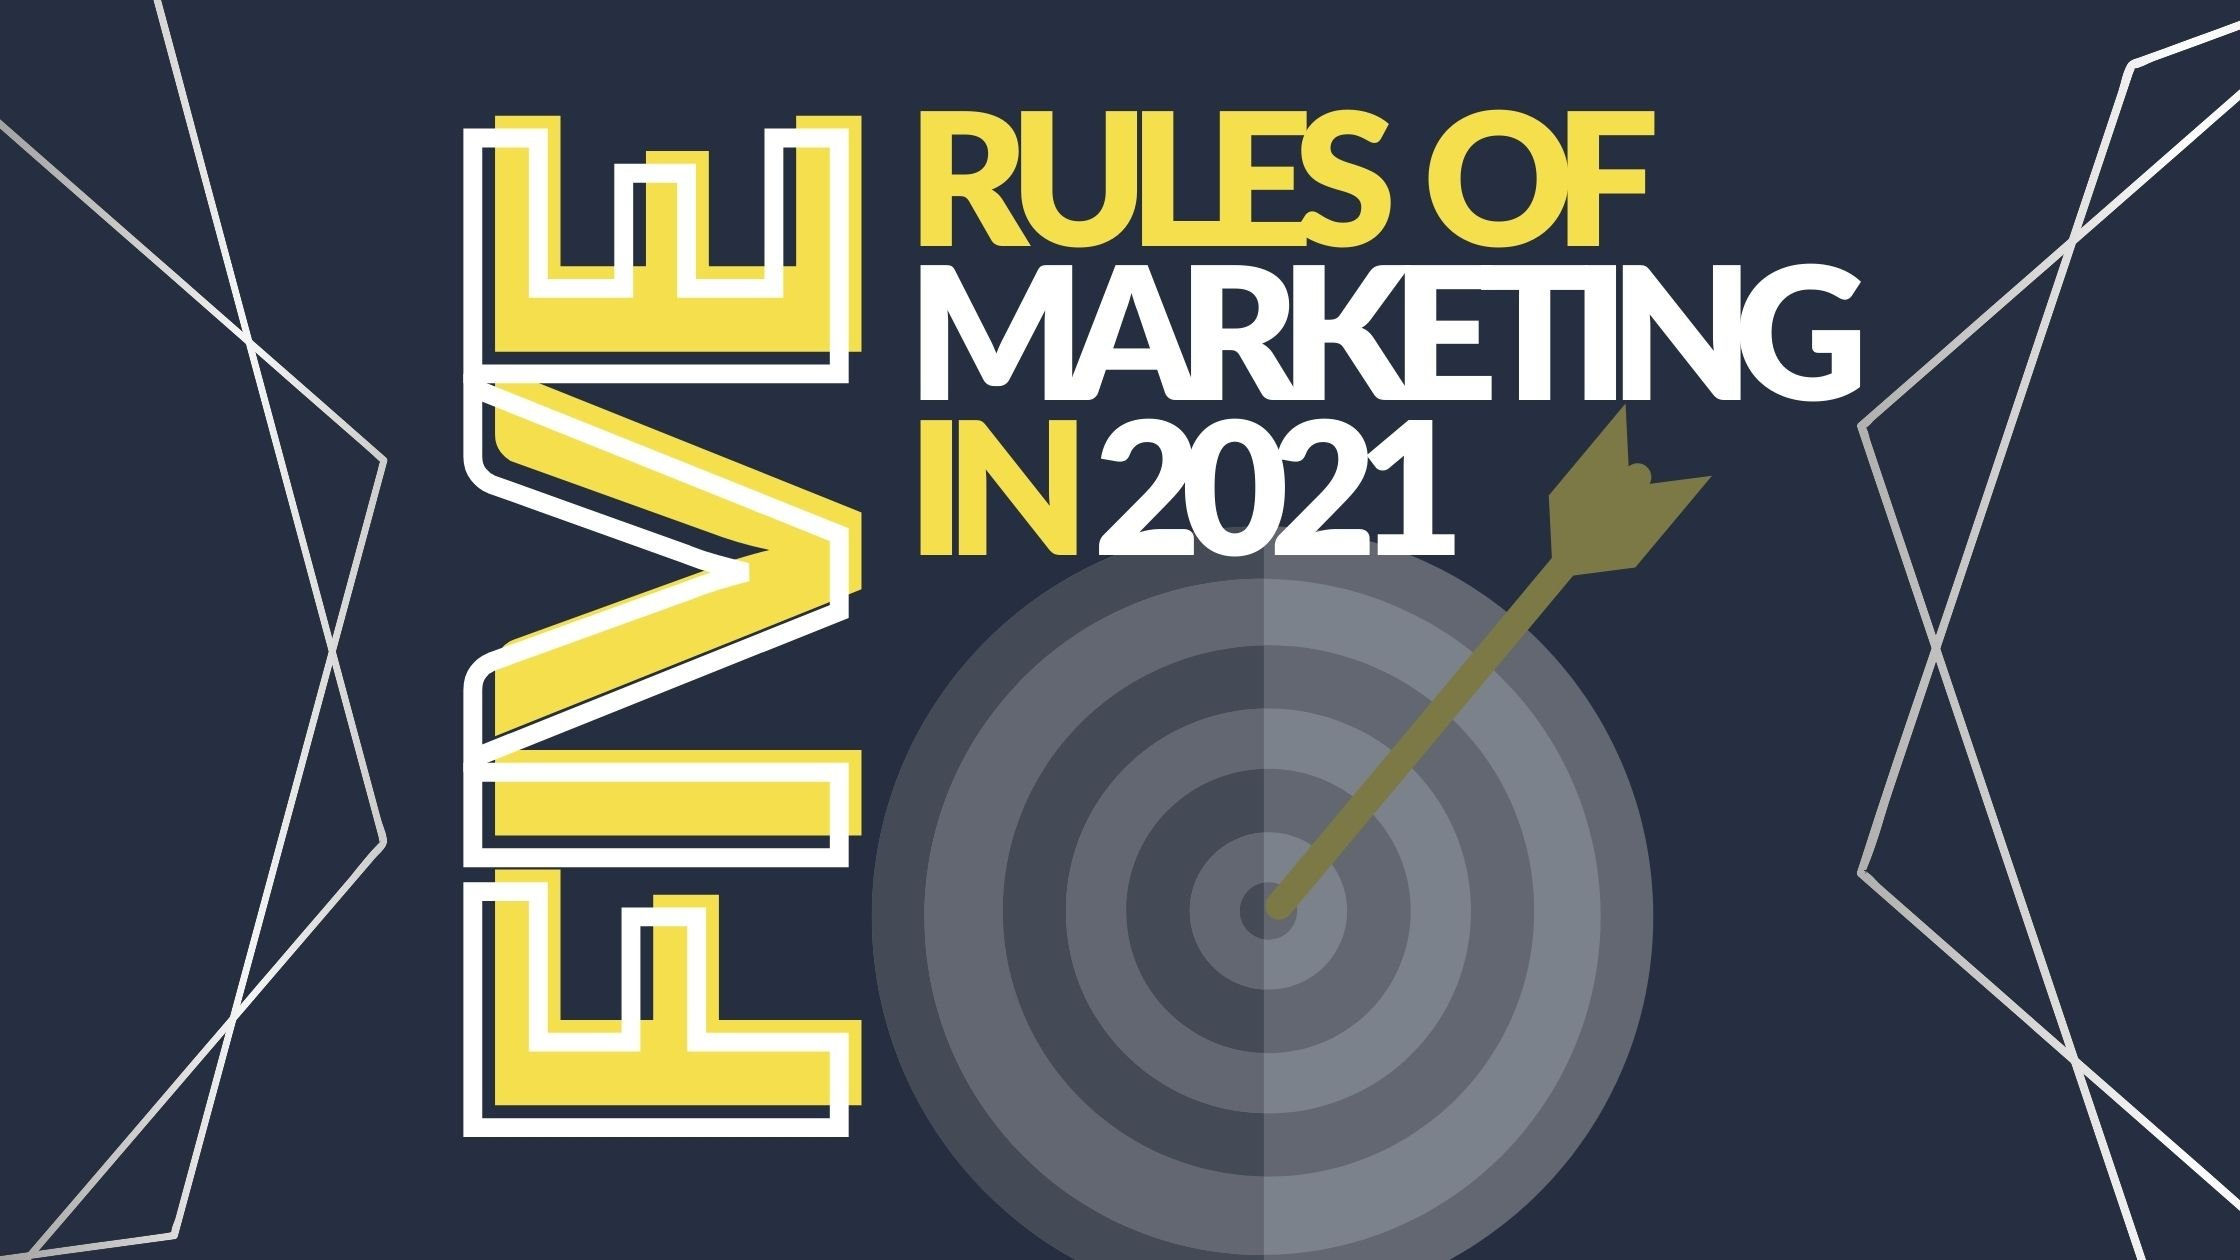 5 New Rules of Marketing in 2021